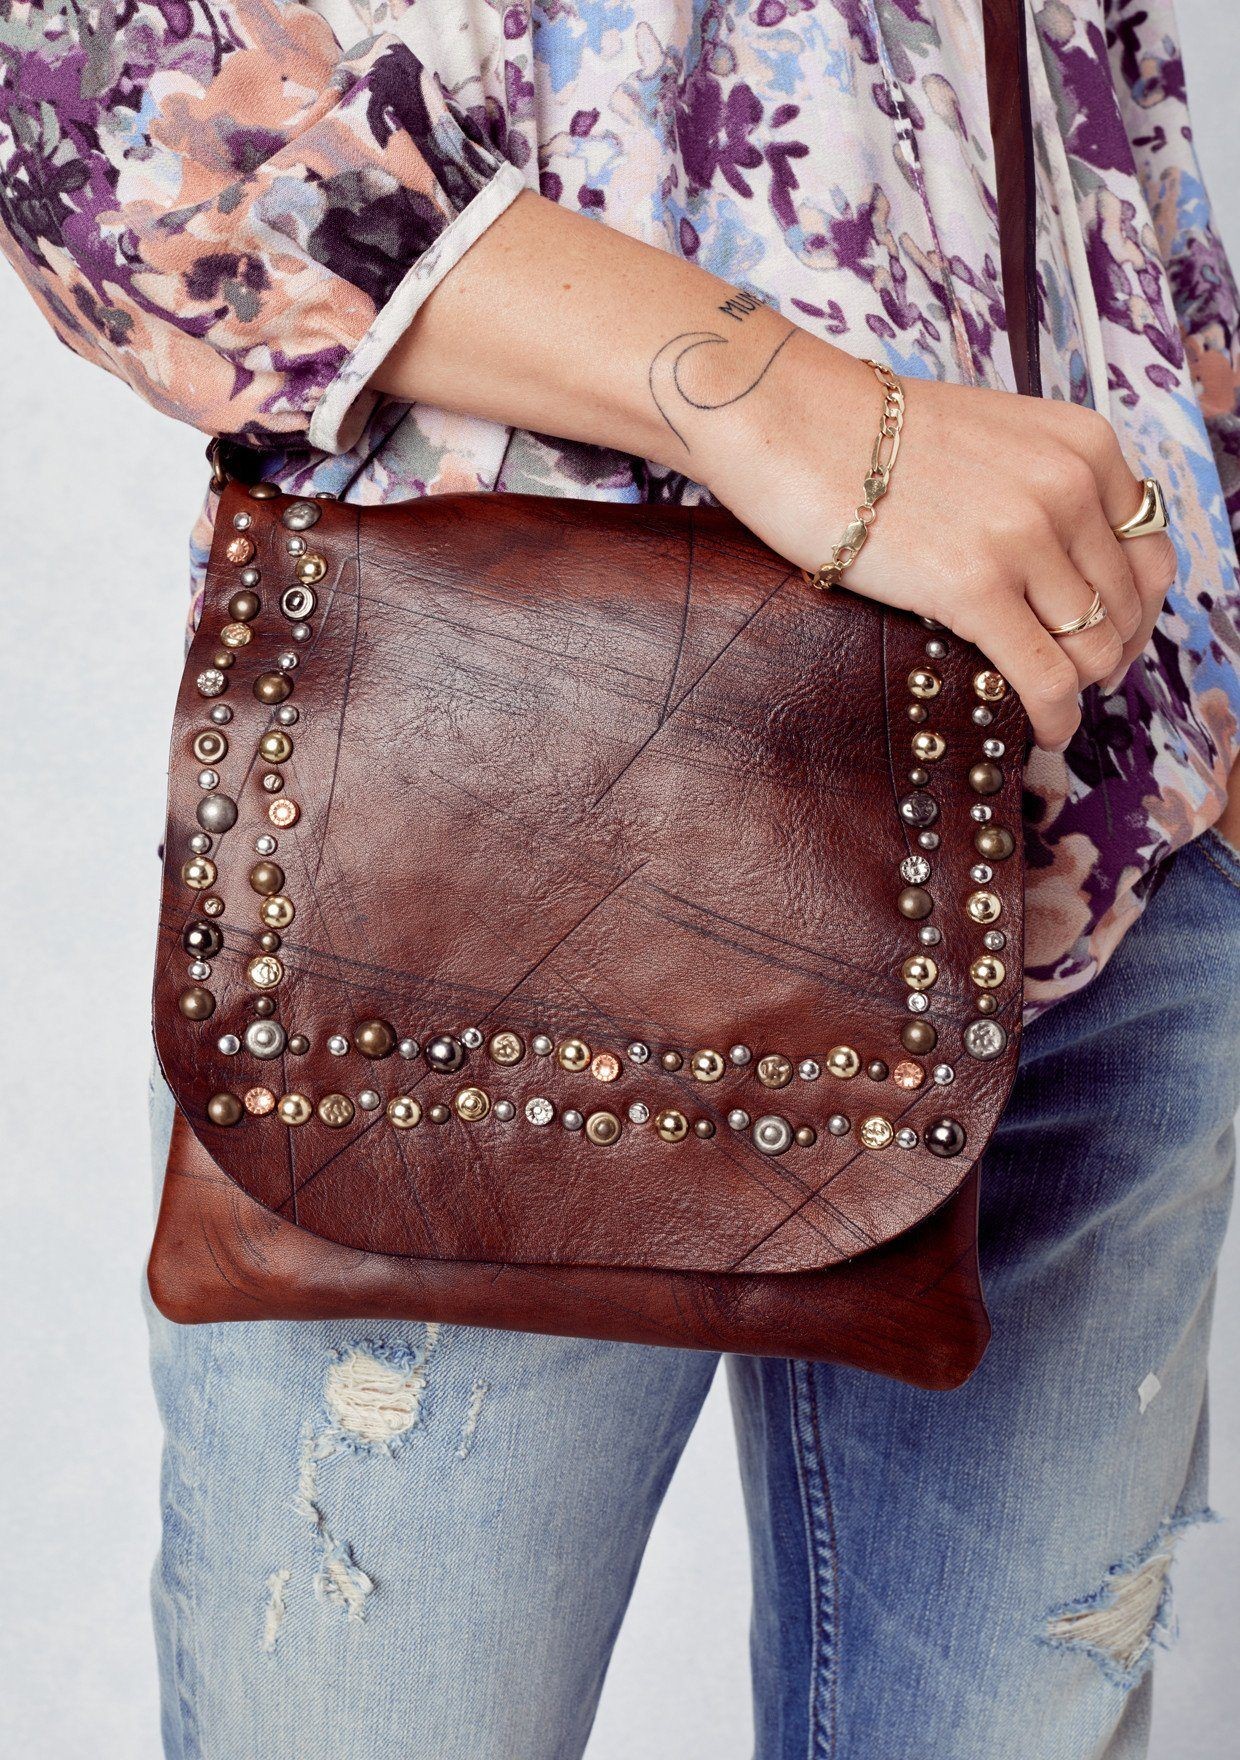 [Color: Cognac] Lovestitch leather crossbody bag with metal studded flap and long leather strap.